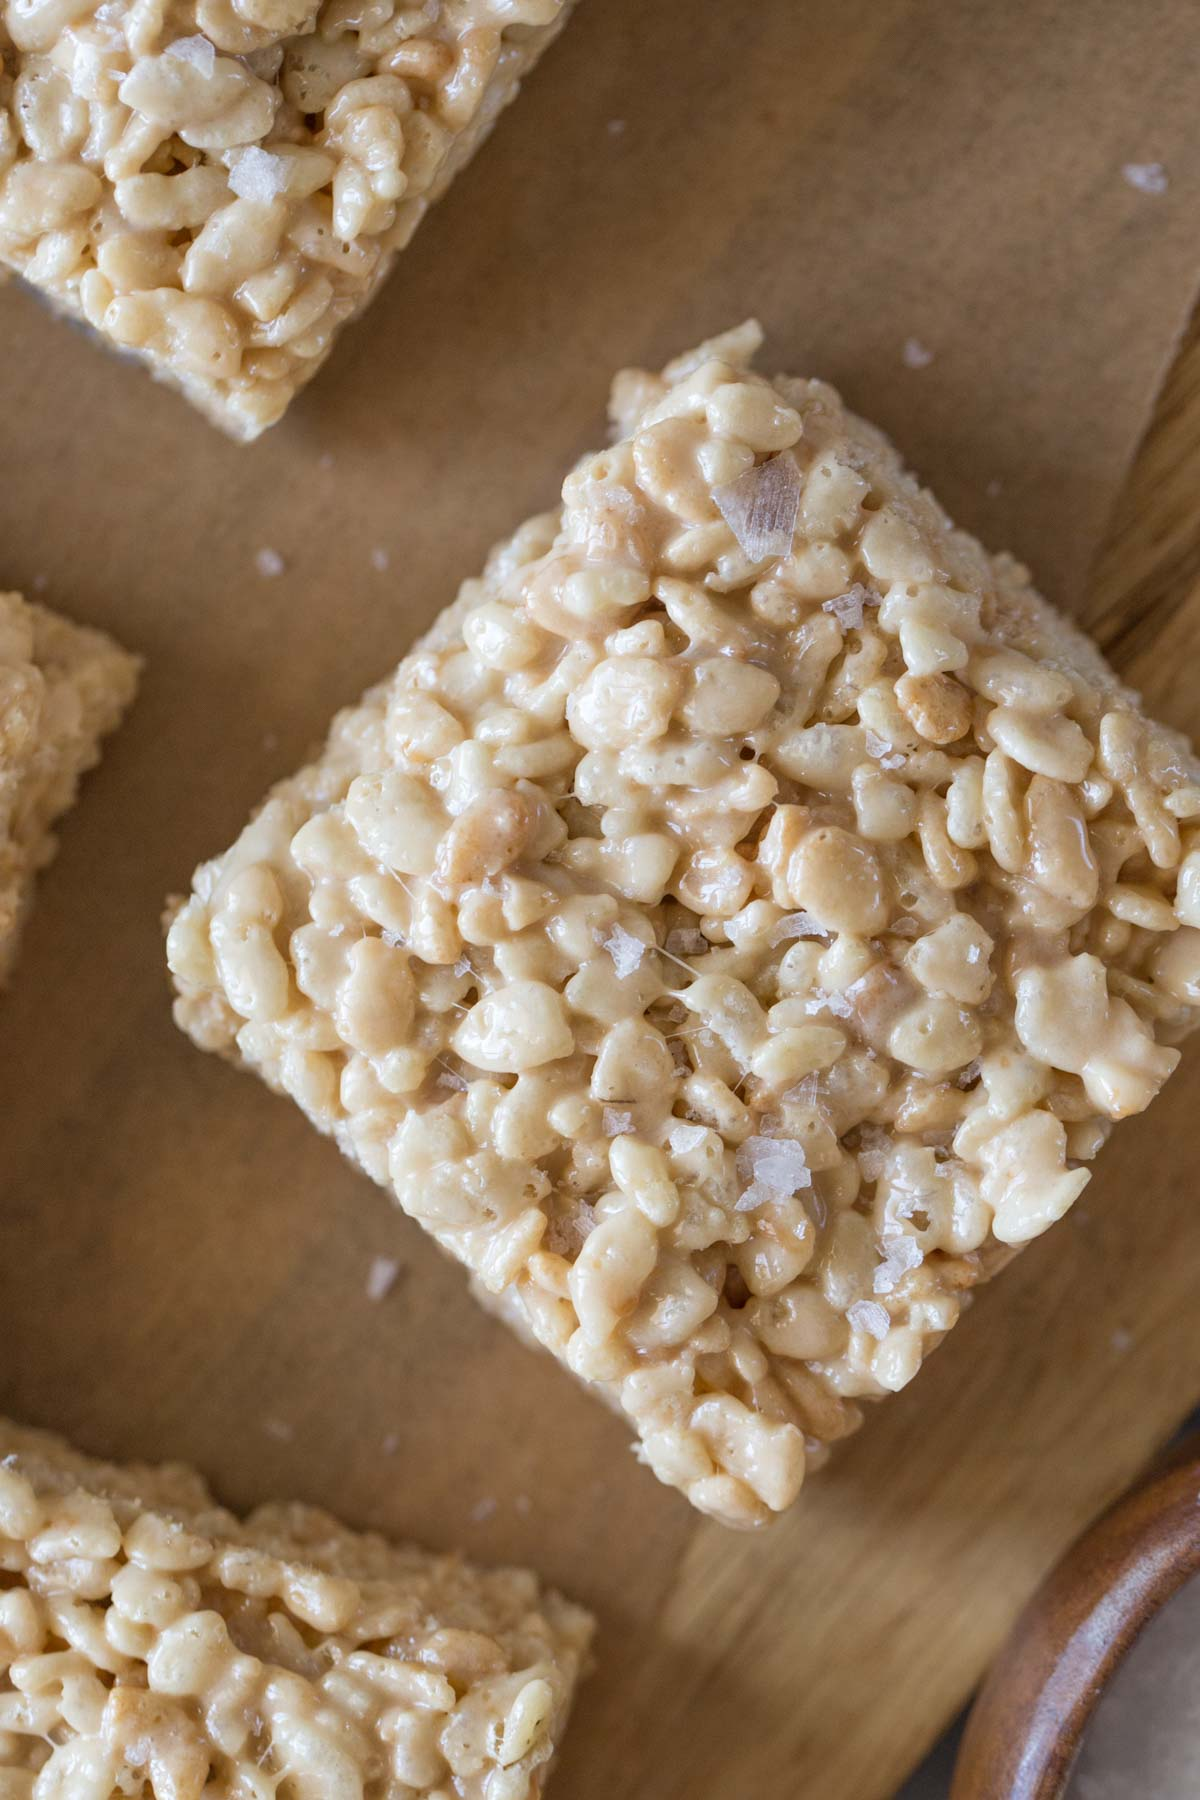 Close up overhead view of Salted Caramel Rice Krispie Treat with flakey sea salt on top.